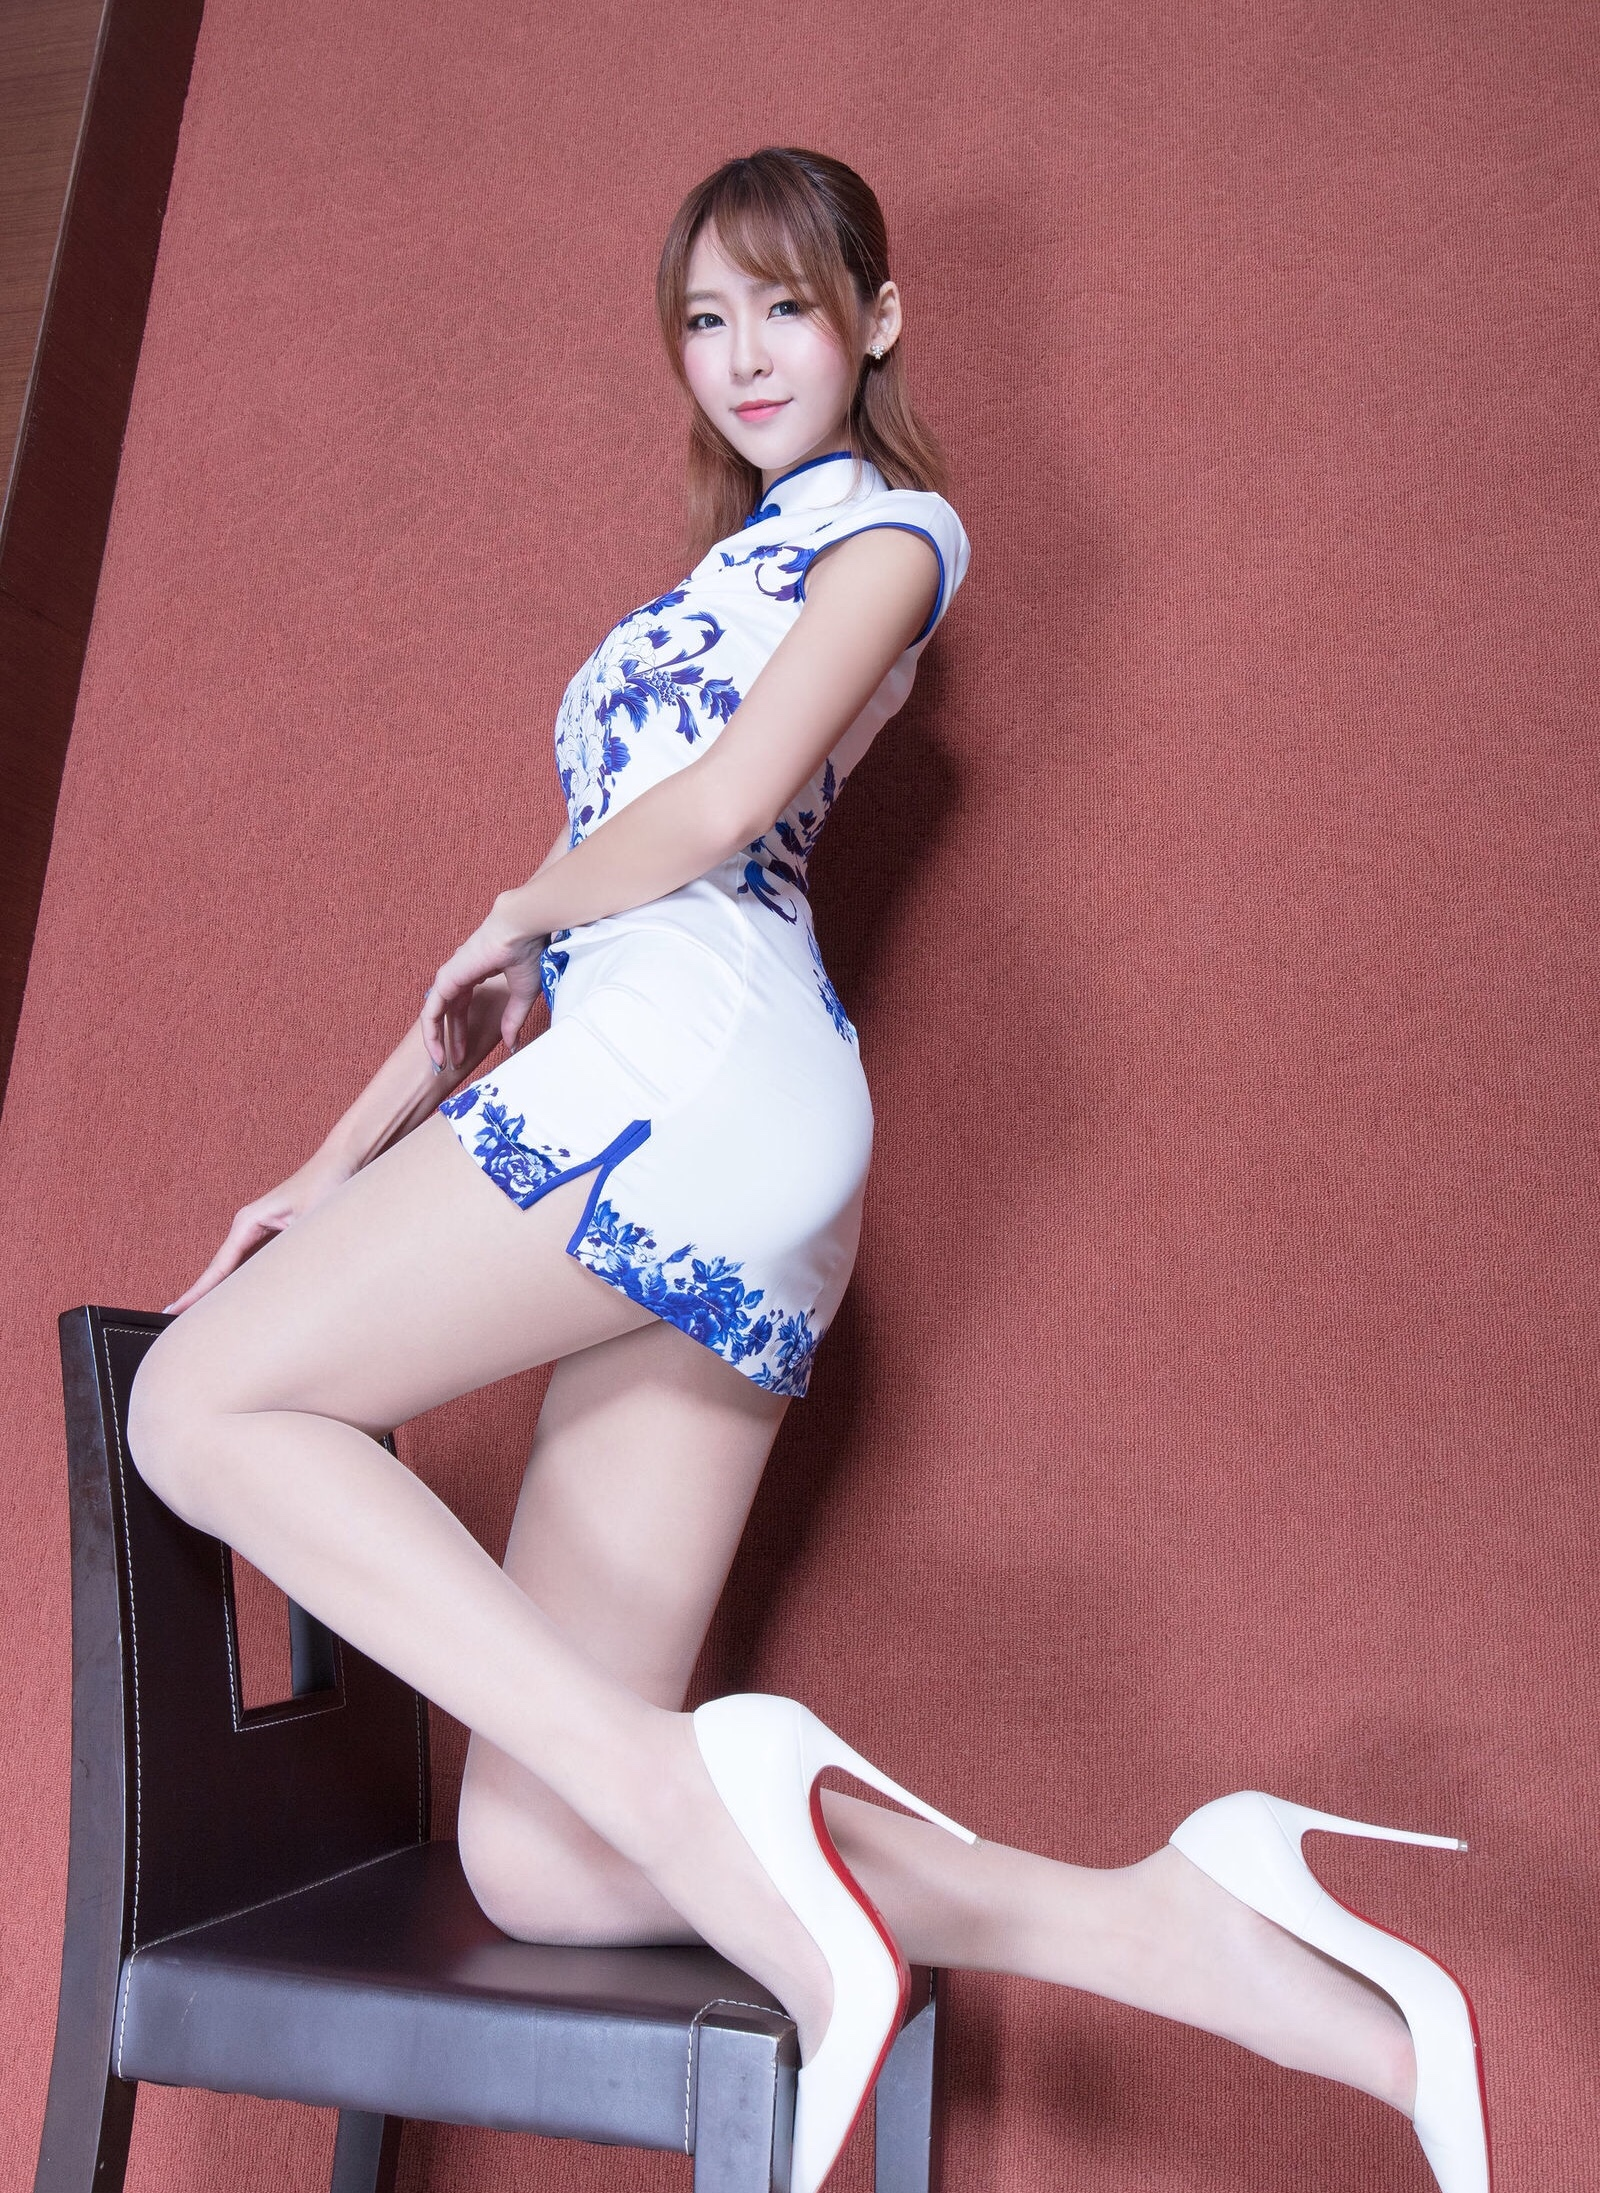 beautyleg model winnie(青花旗袍肉丝) 12